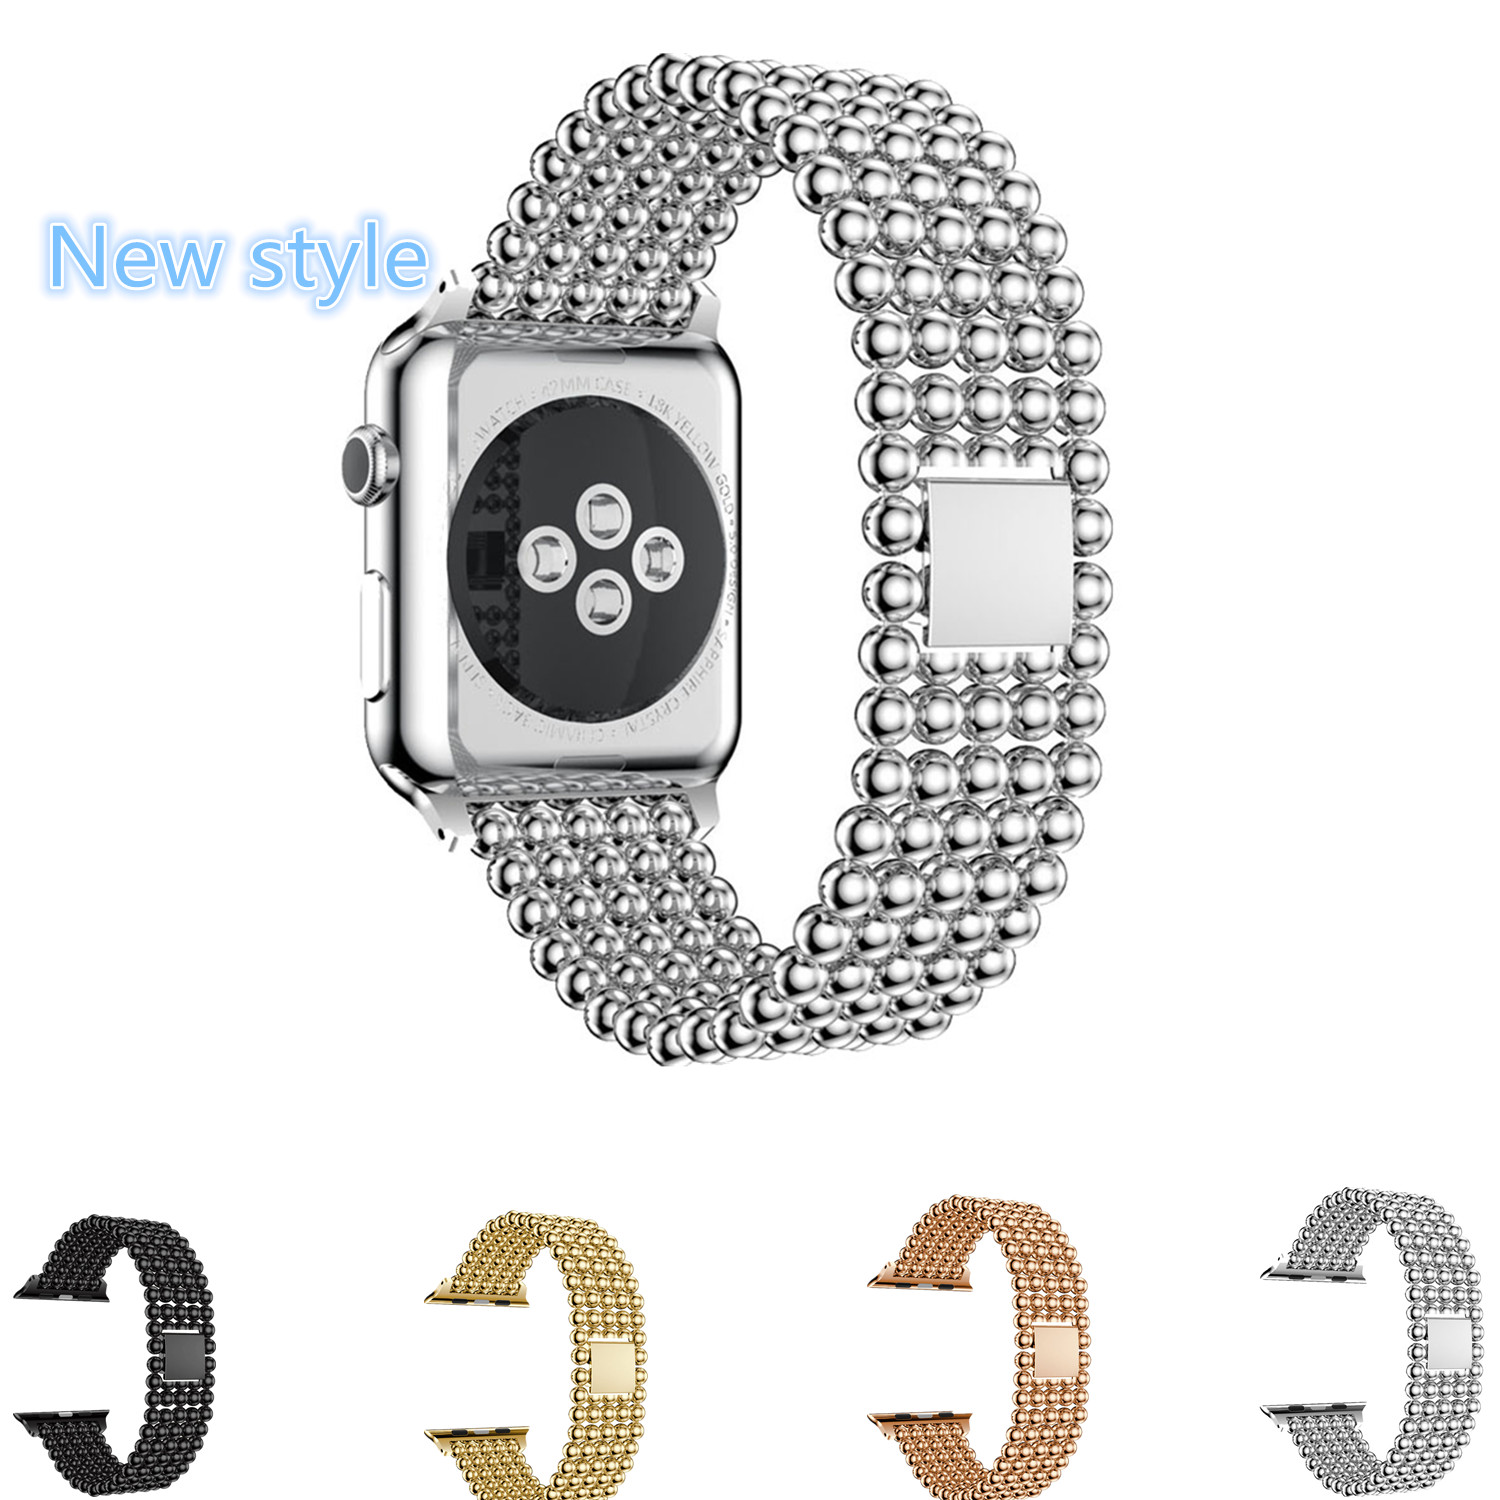 CRESTED Stainless Steel link Bracelet watch strap For Apple Watch Band 42 mm 38 mm with Buckle Strap Clip Adapter for iwatch 1 2 crested stainless steel watch band for fitbit charge 2 bracelet smart watch strap for fitbit charge2 with connector